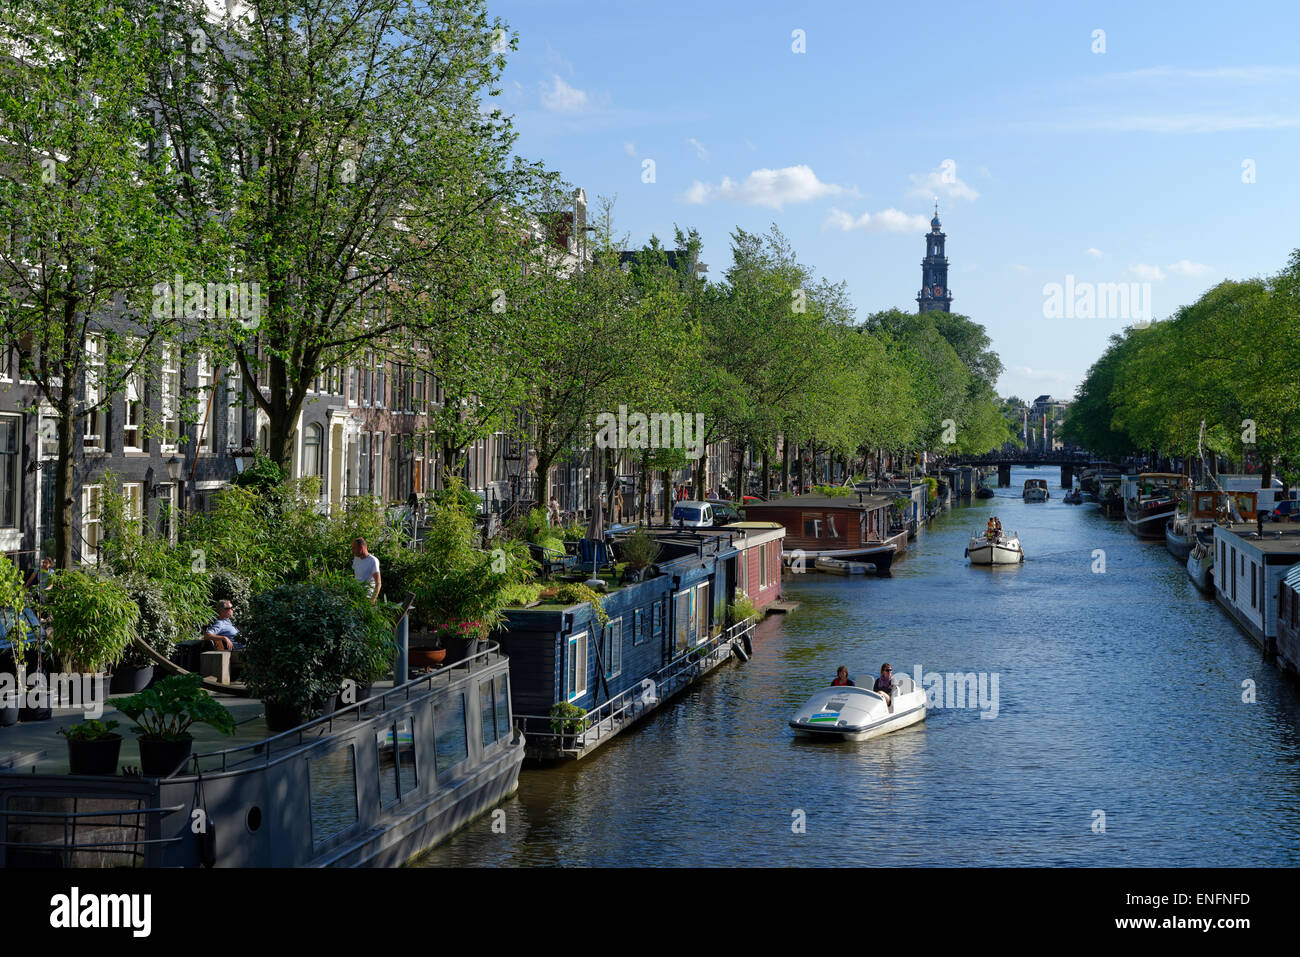 On the Prinsengracht with the Westerkerk, historic centre along the canals, Amsterdam, The Netherlands - Stock Image